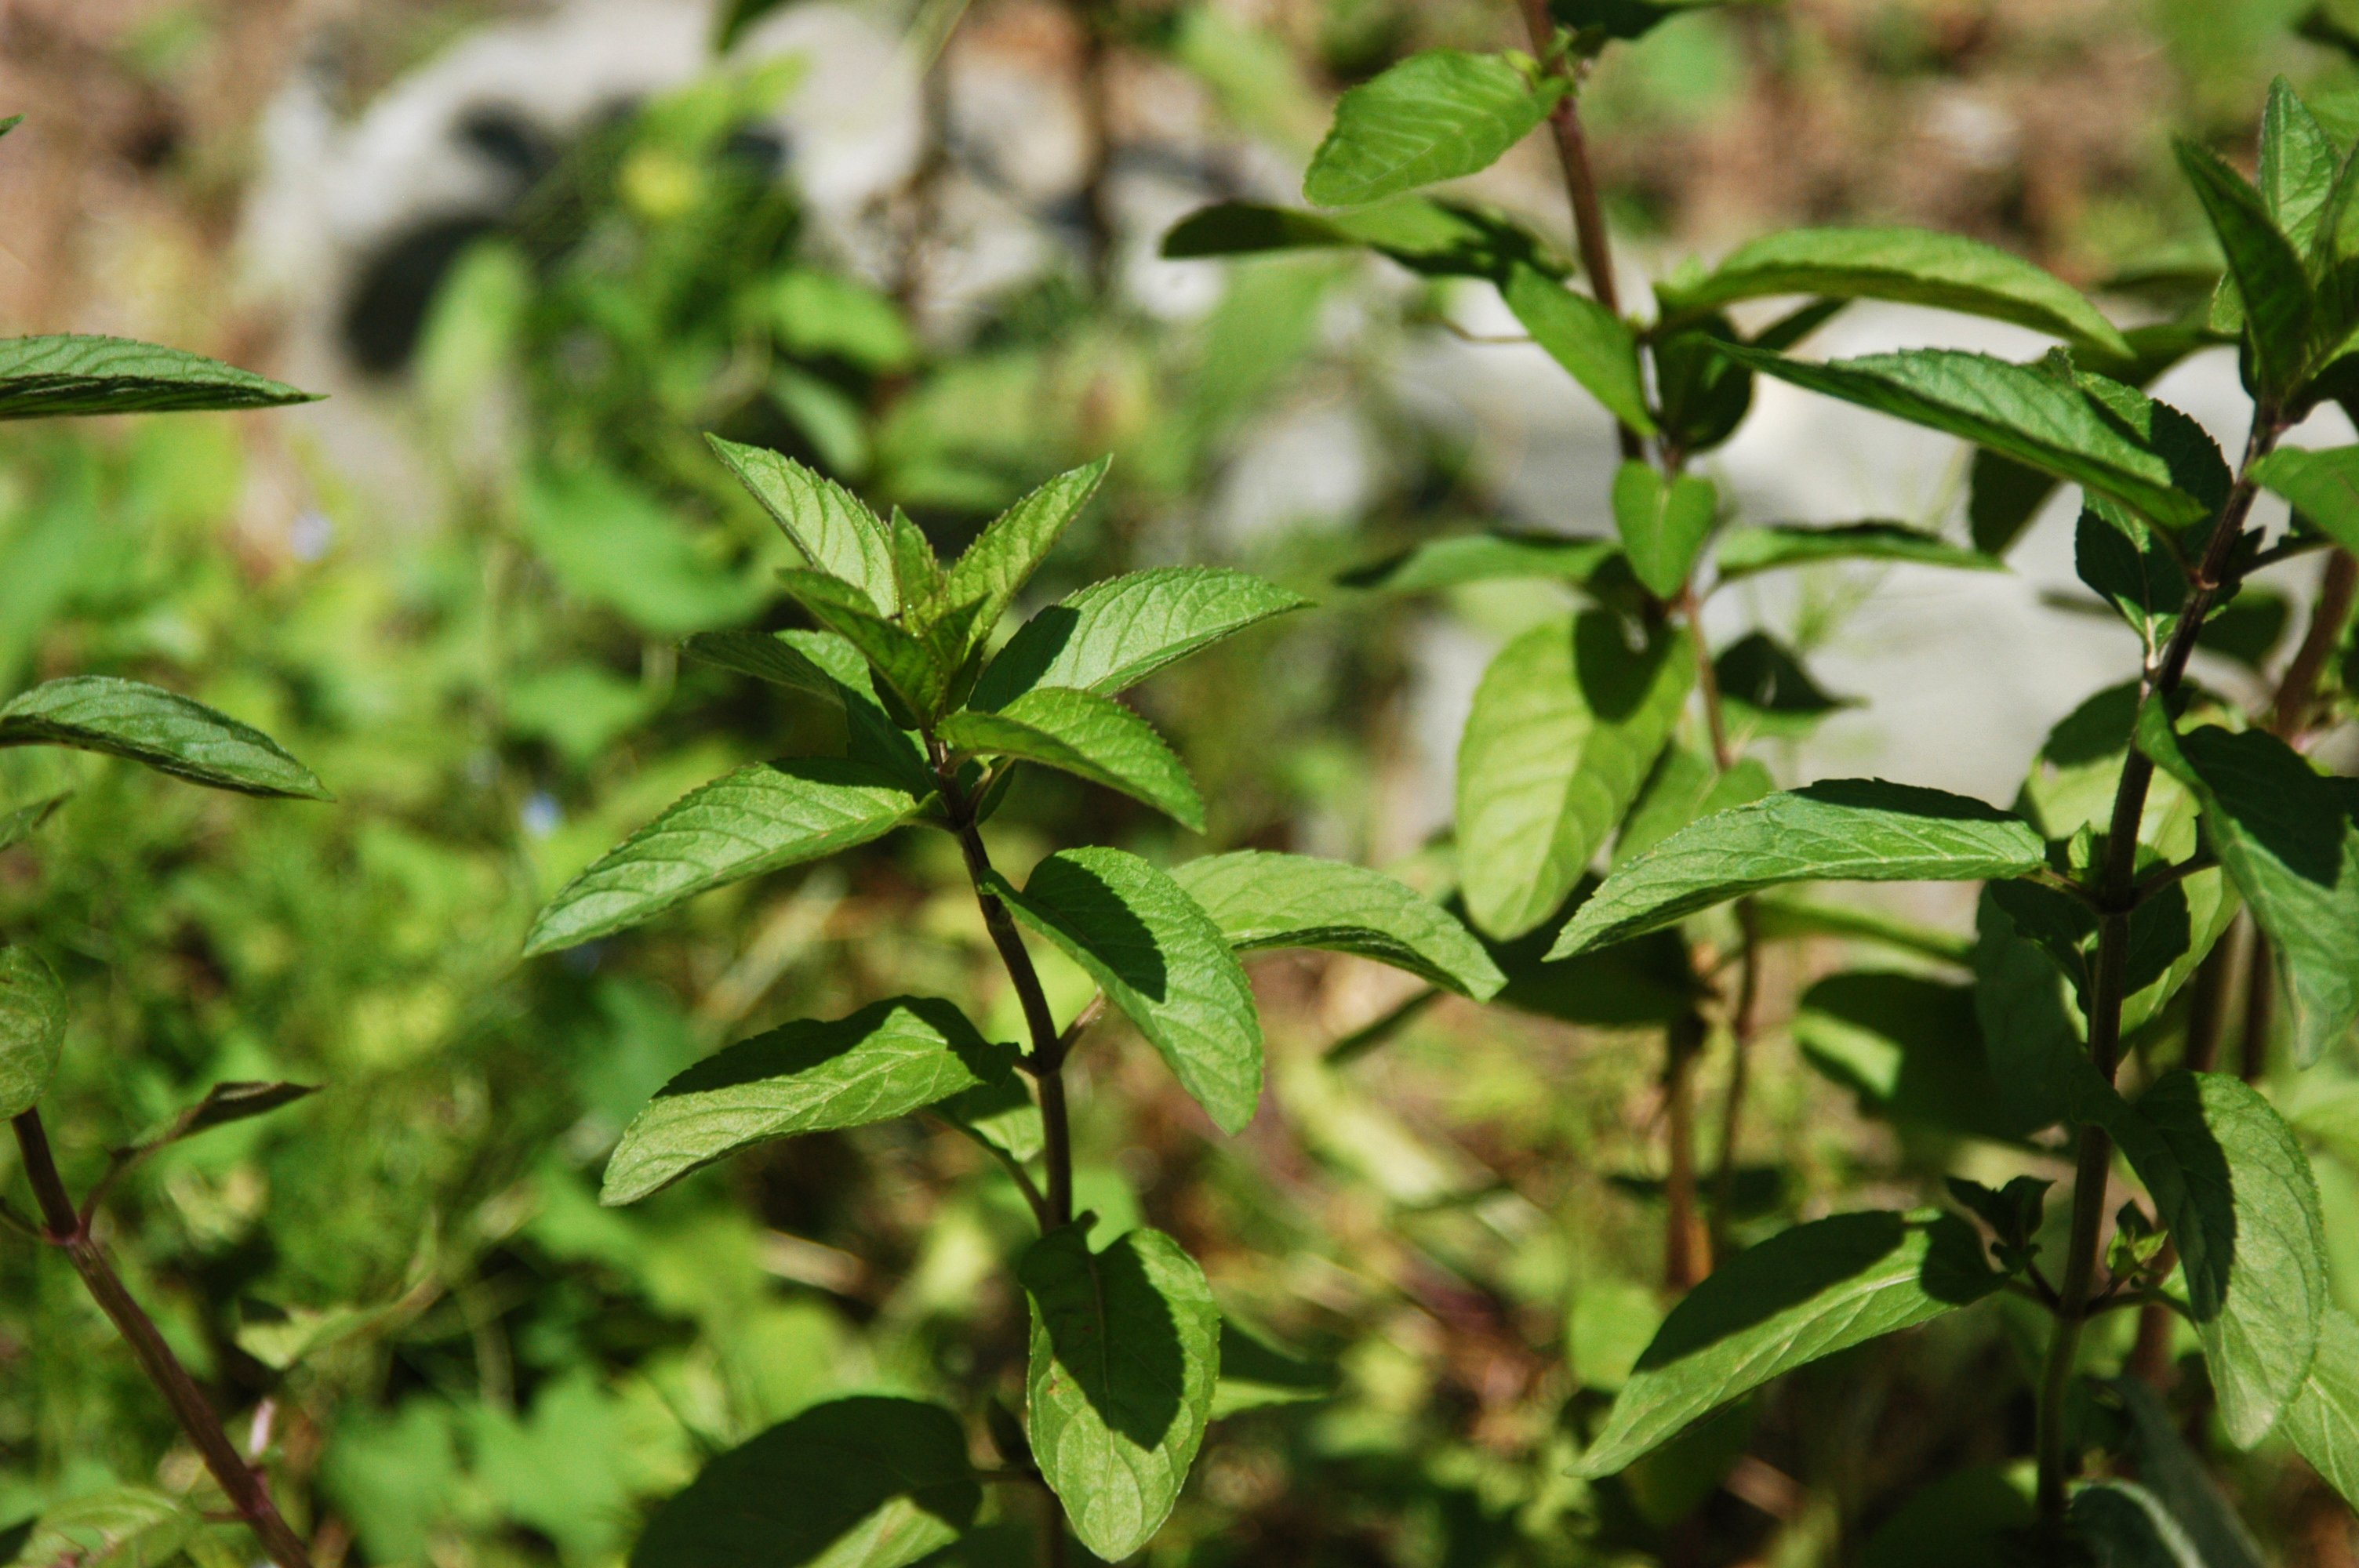 File:Mentha piperita - Pfefferminze.jpg - Wikipedia